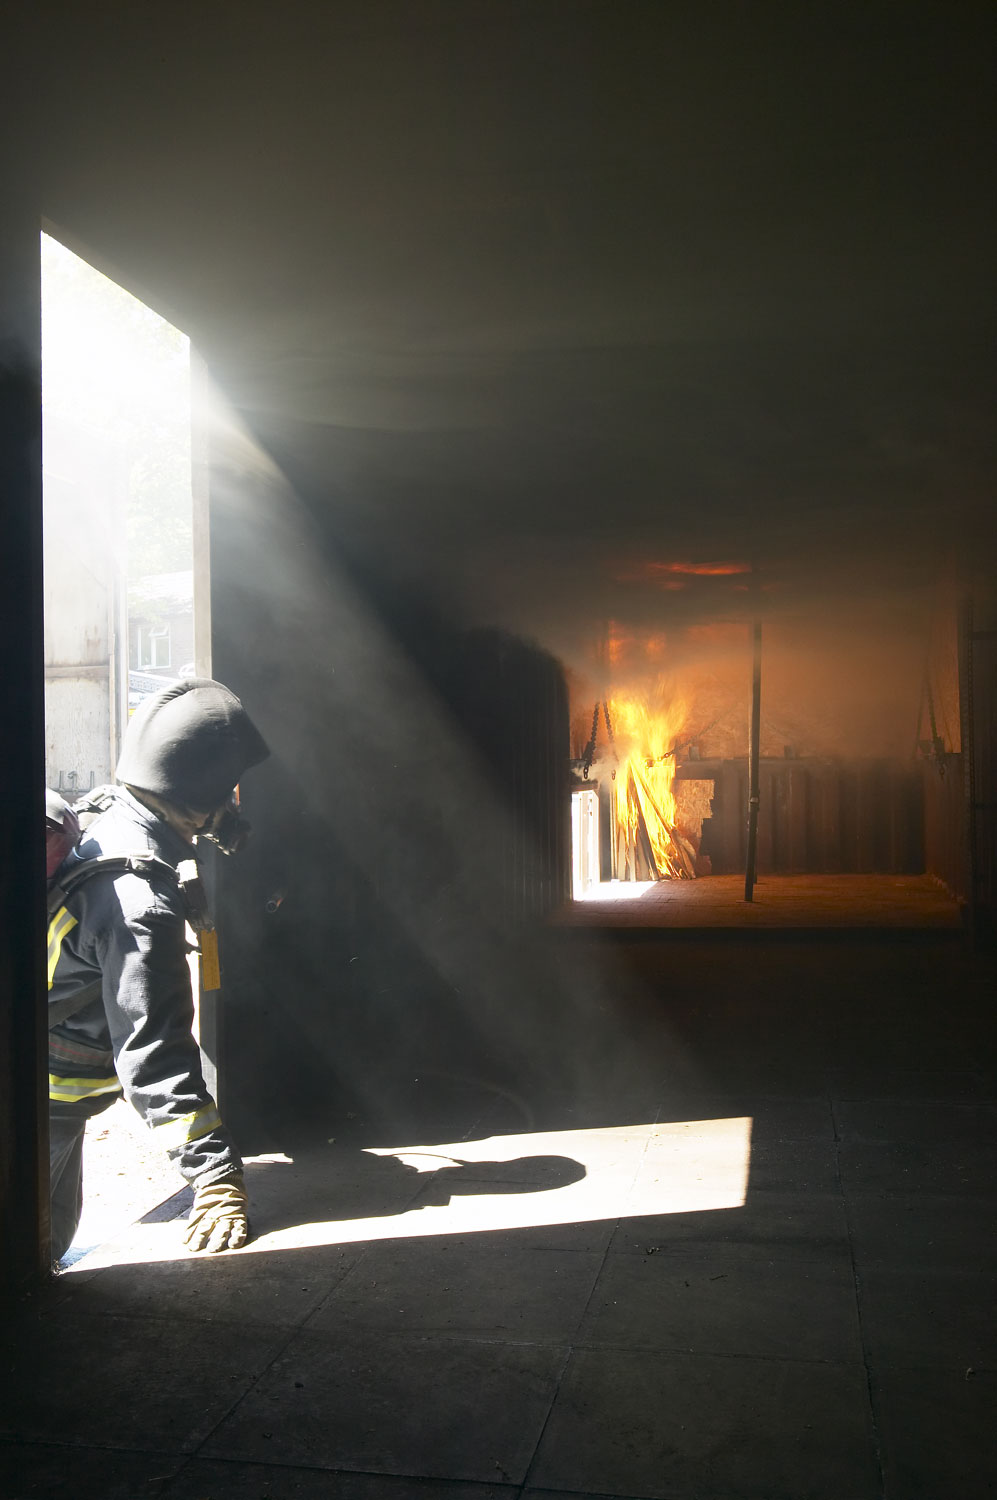 Buckinghamshire Fire Service firebox training | Commercial Photographers UK | Commercial Photographer